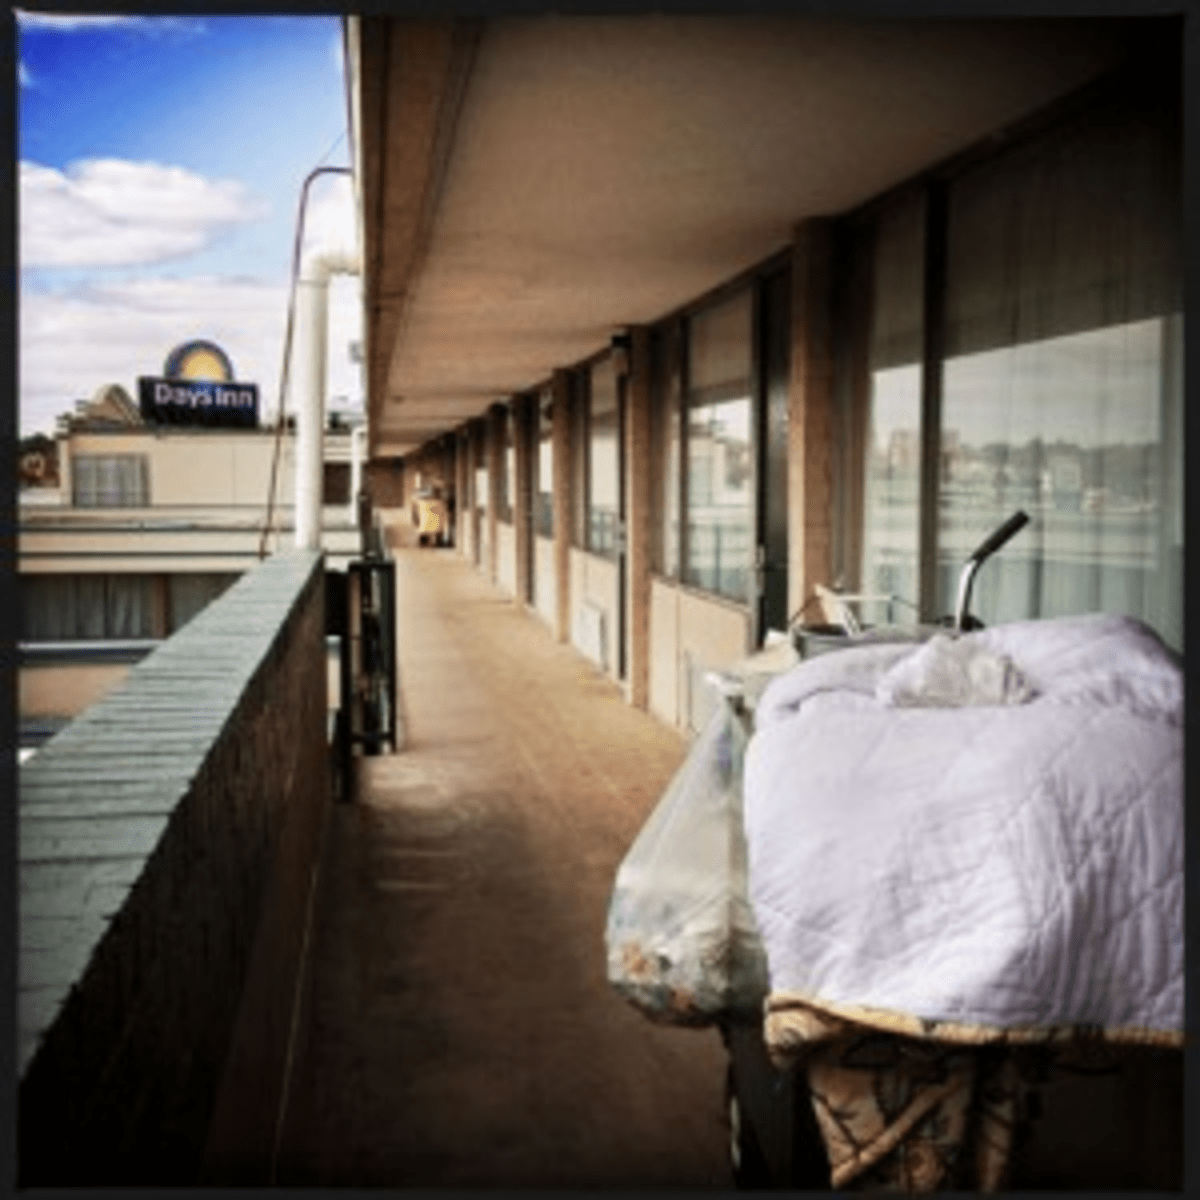 As it did last winter, the city is sheltering homeless families at the Days Inn on New York Avenue NE.